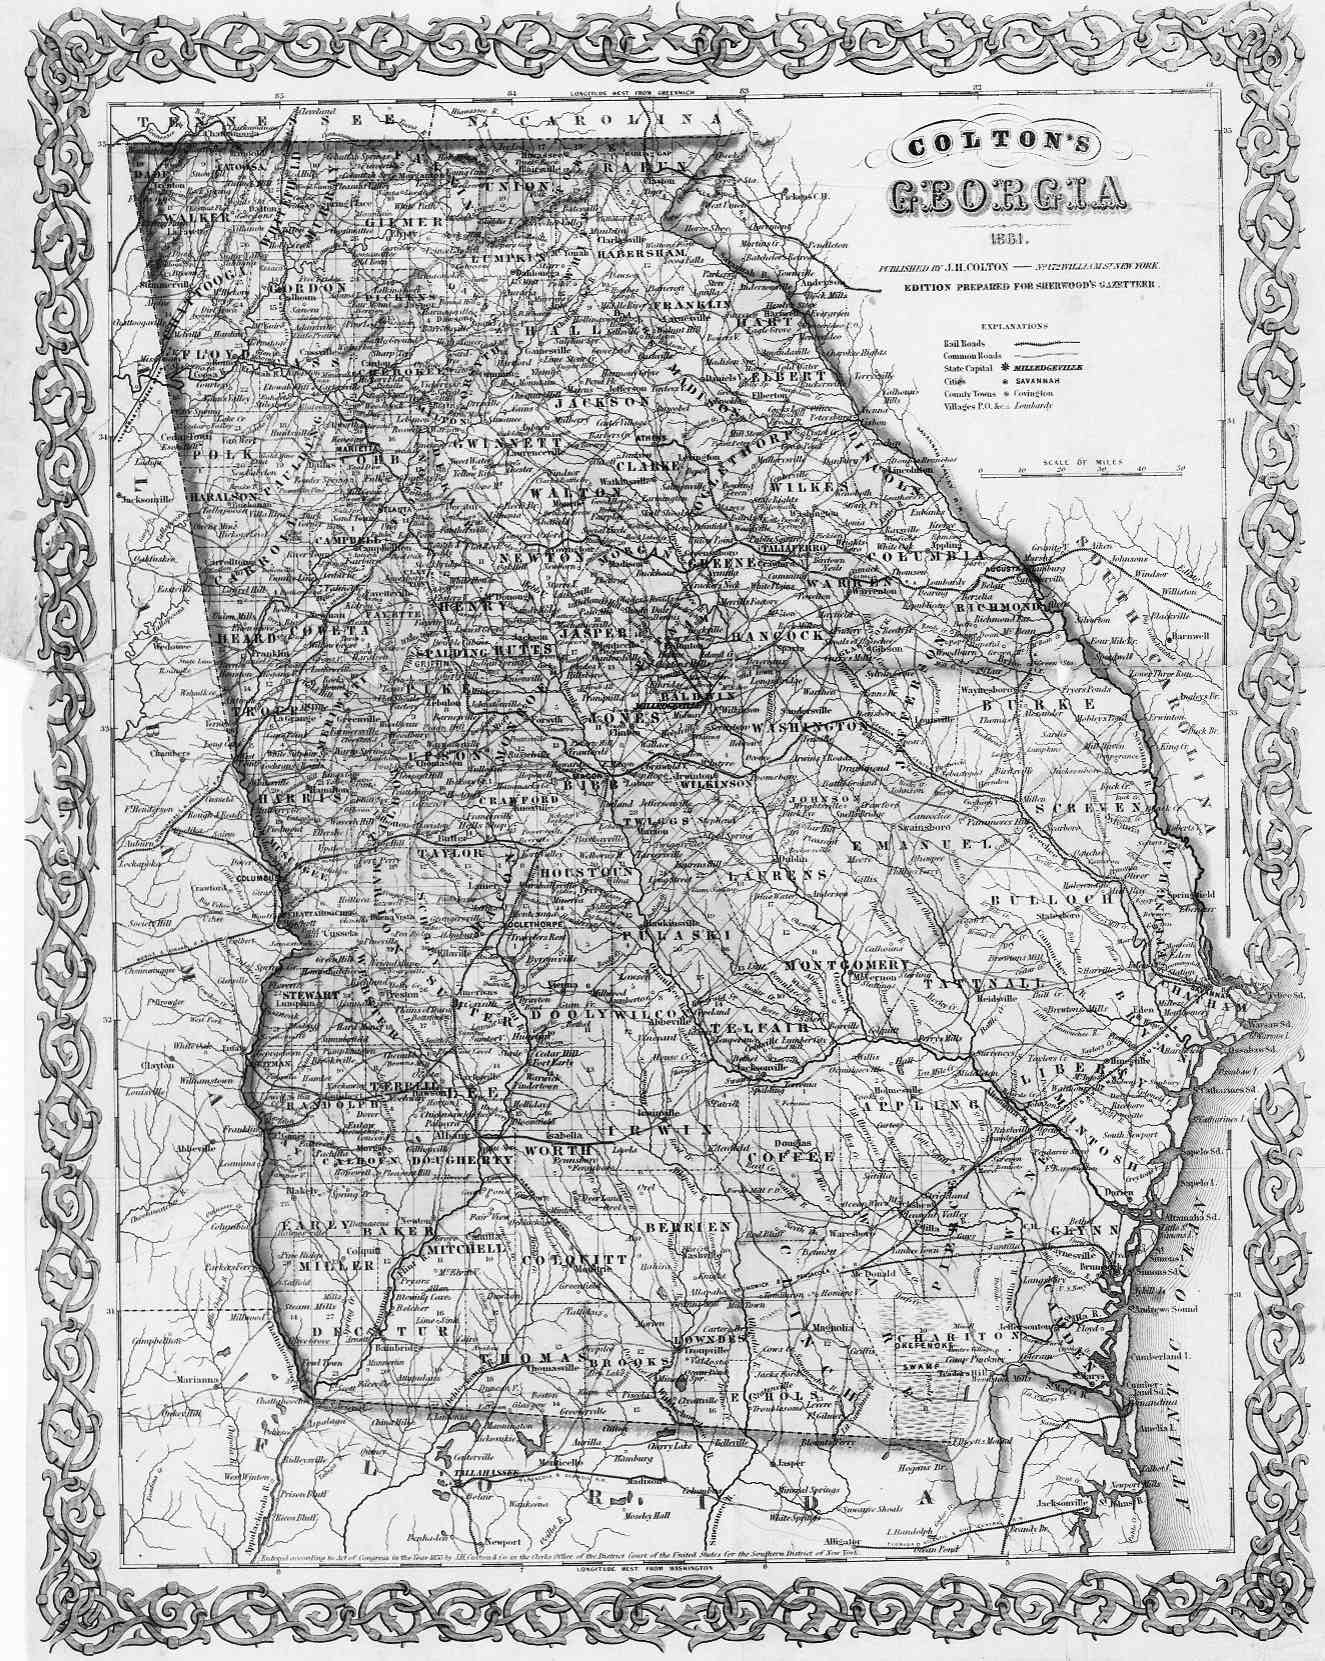 GA Historical County Lines - Georgia gold map